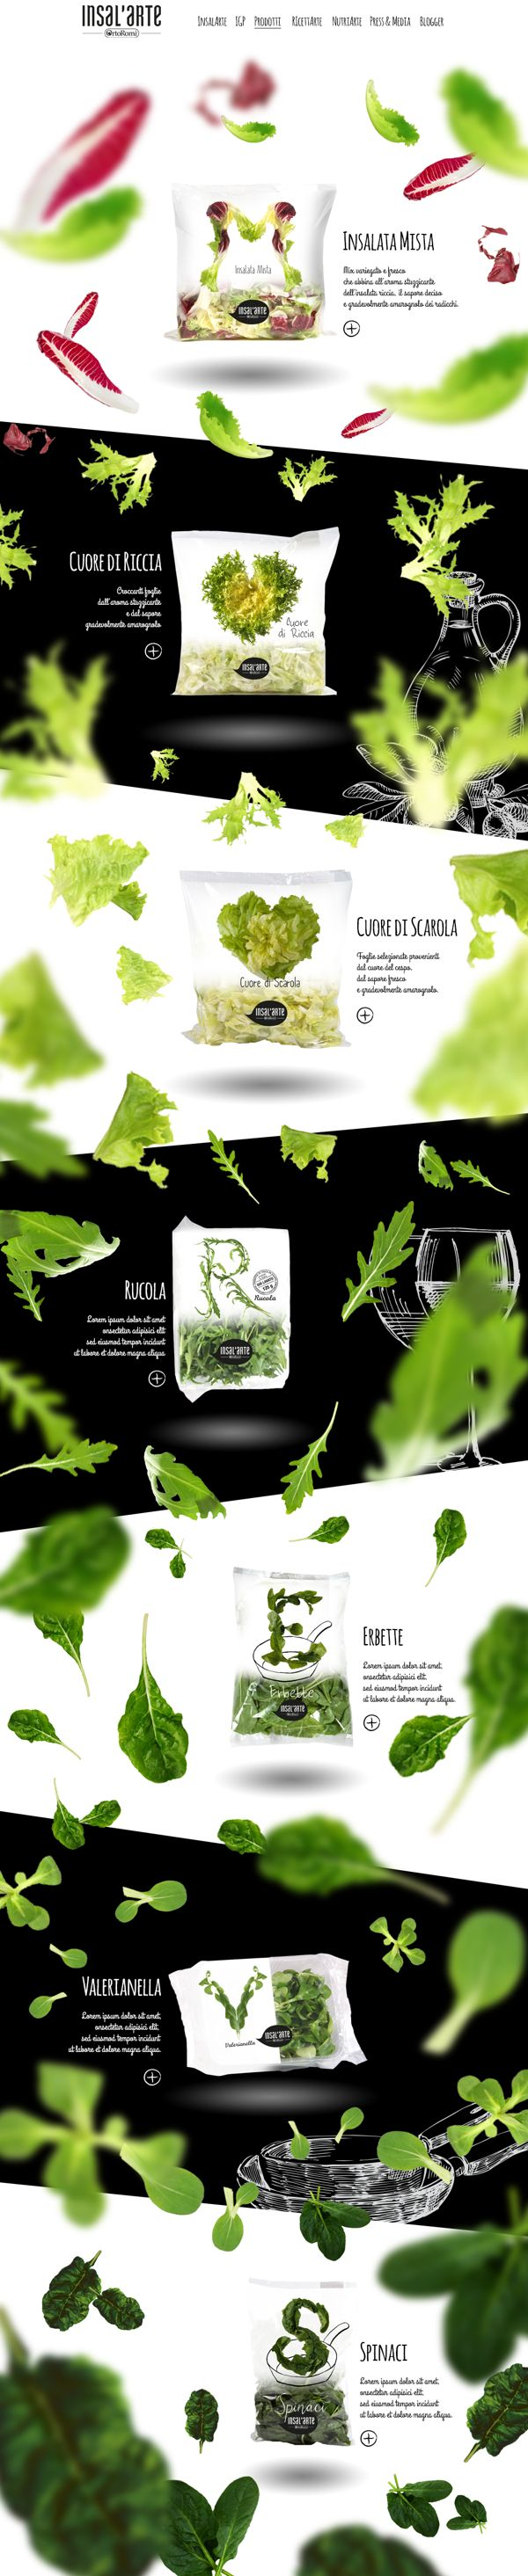 Ortoromi. The art of salad. #webdesign #design #salad